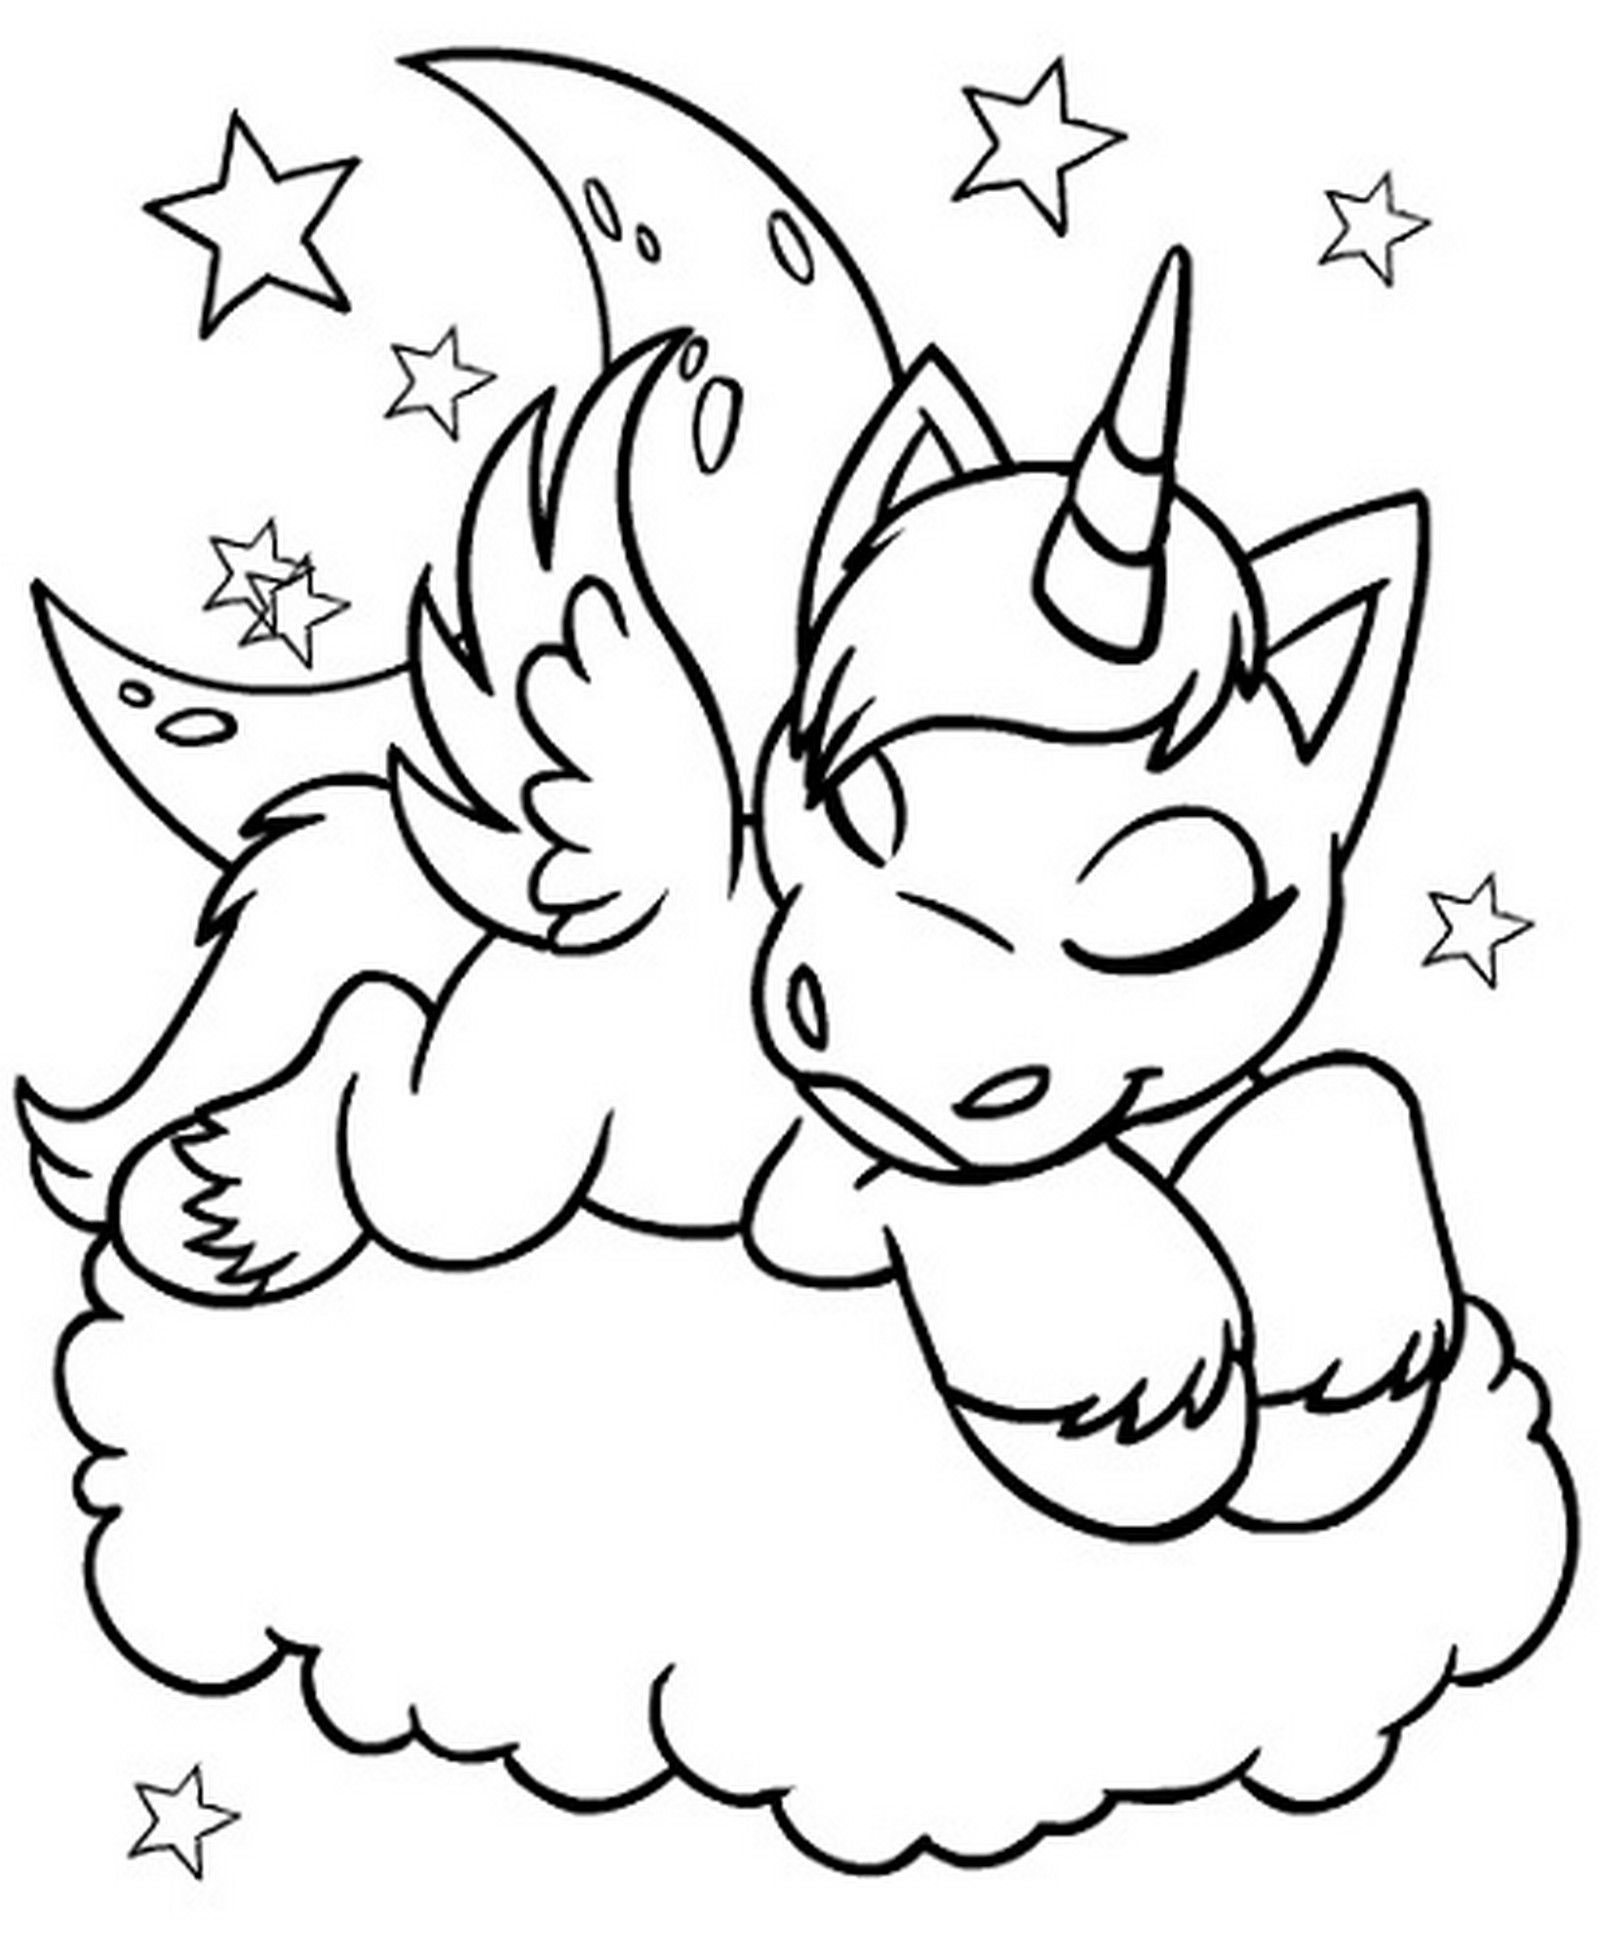 coloring pictures unicorn unicorn coloring pages to download and print for free coloring pictures unicorn